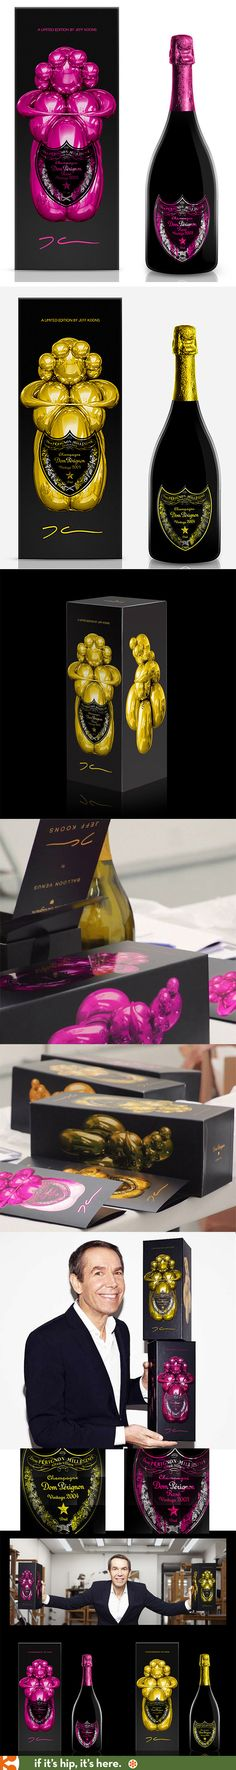 The Jeff Koons X Dom Perignon gift boxes and bottles